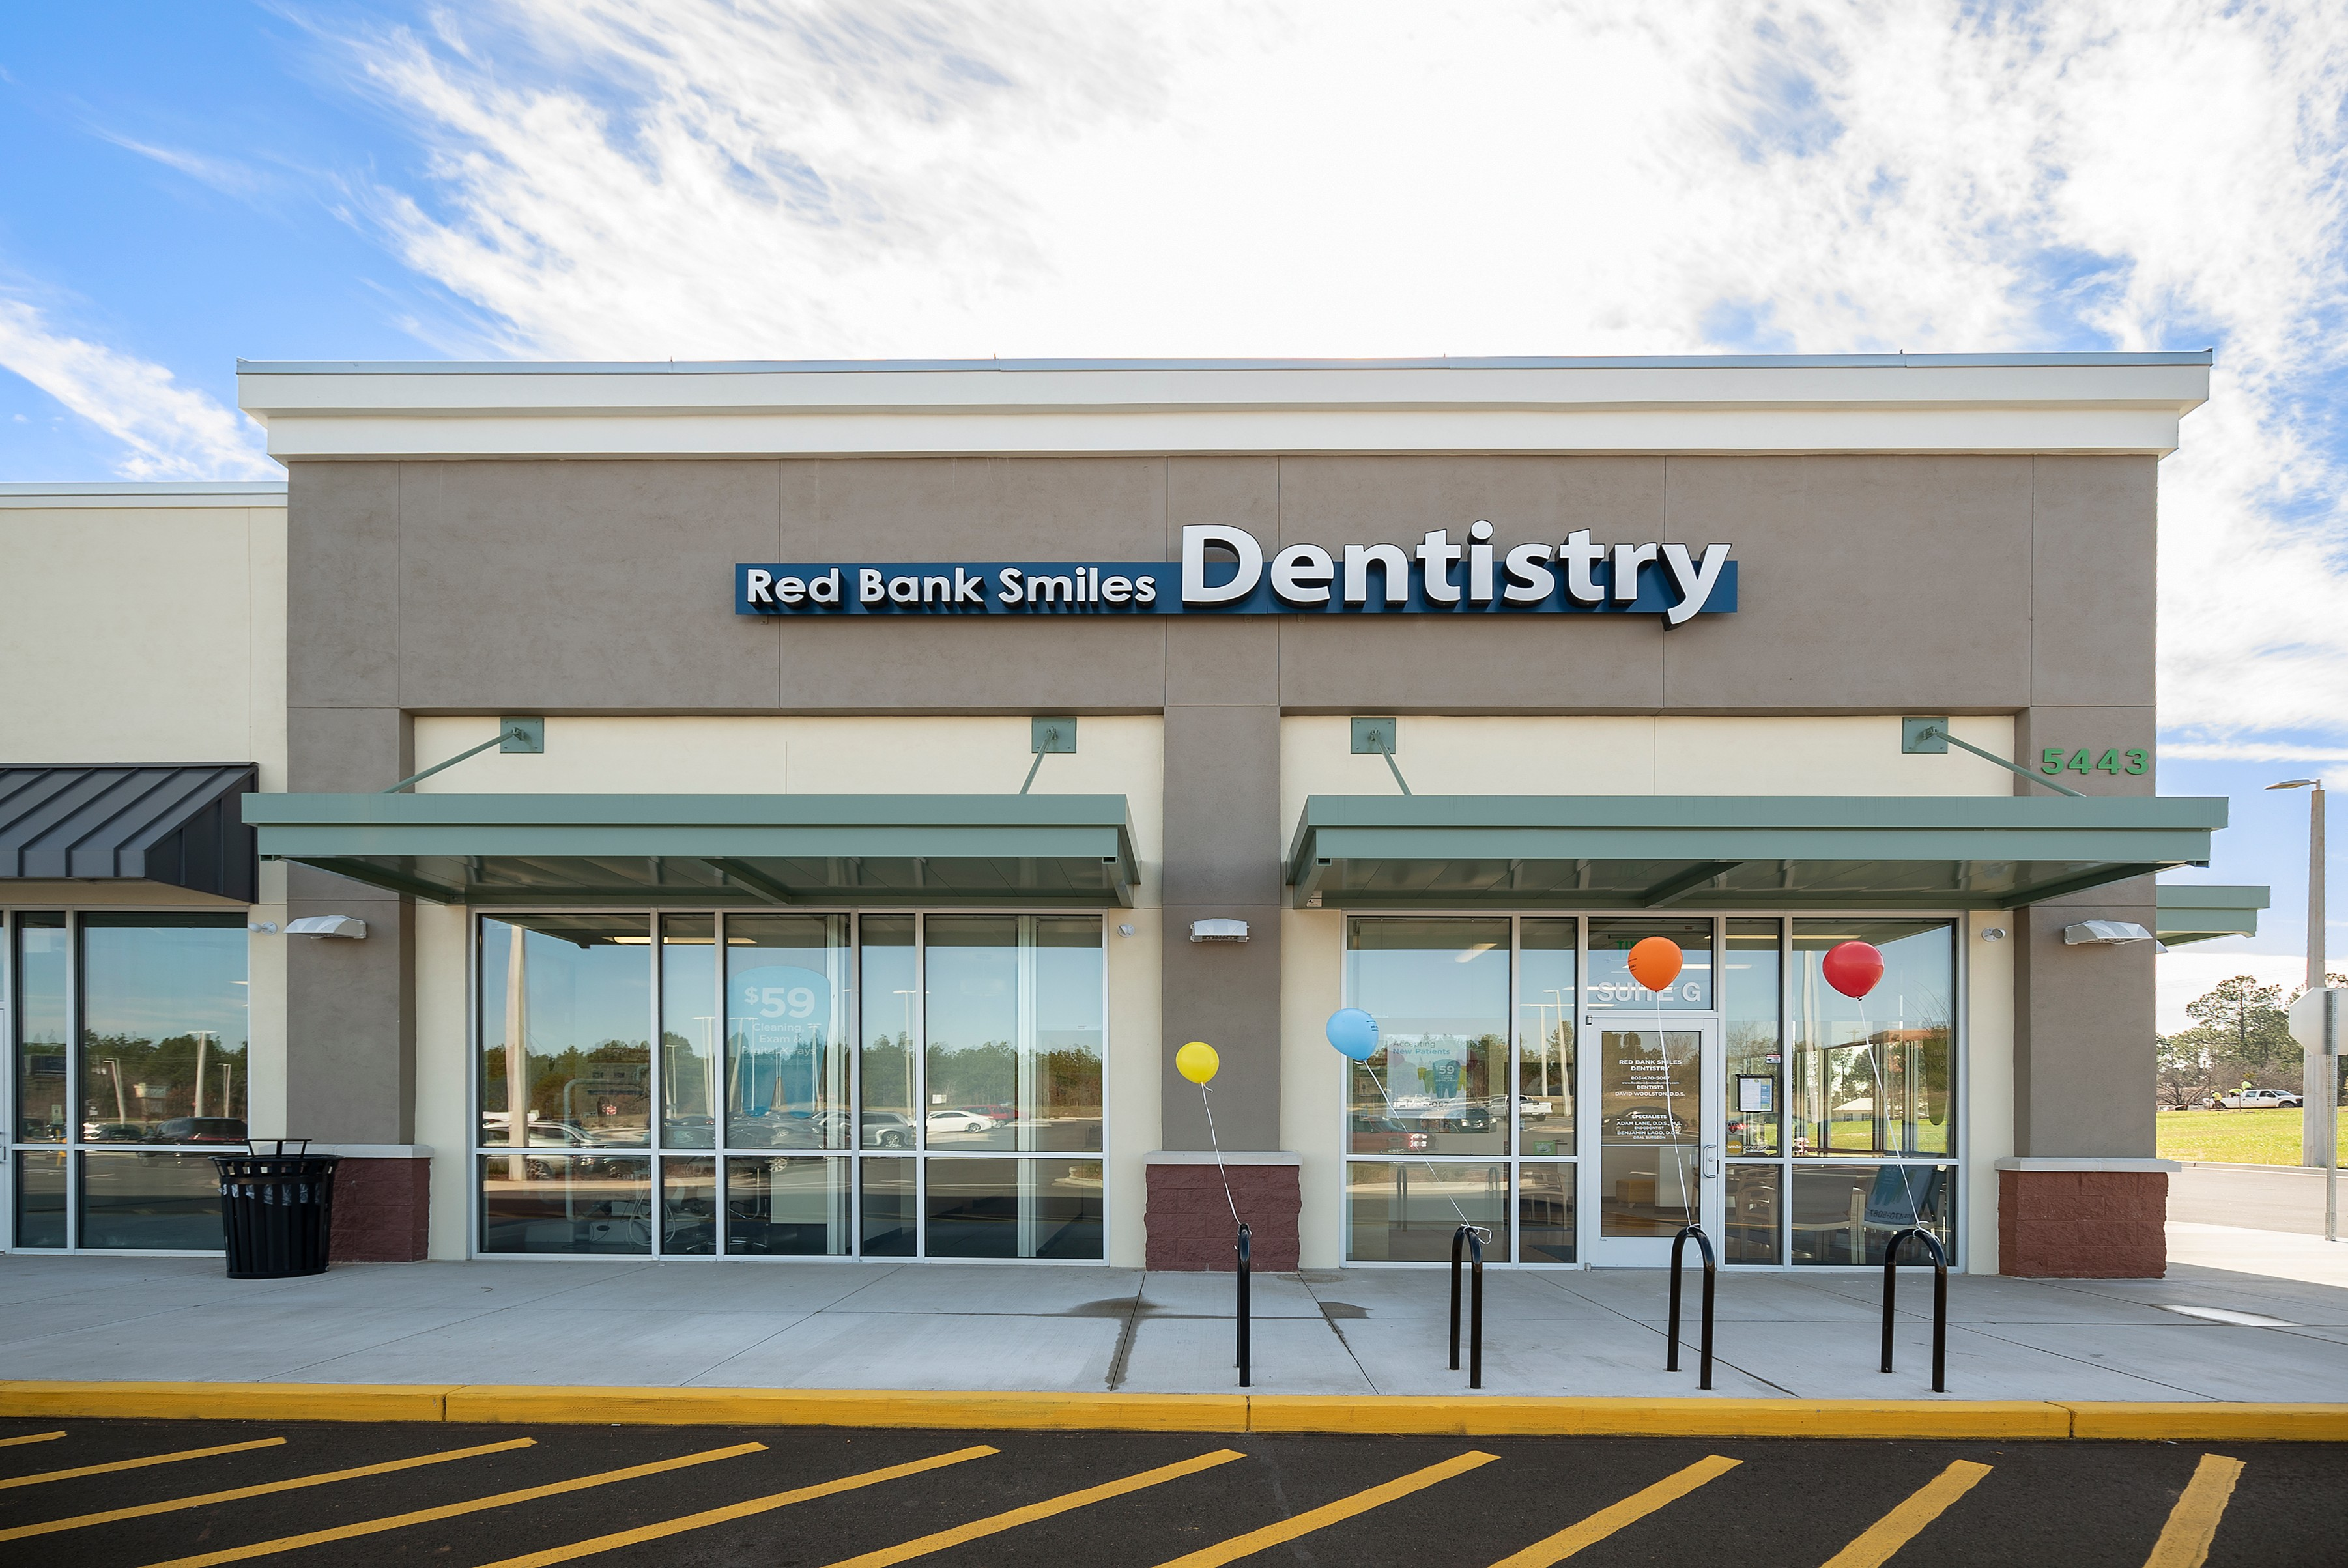 Red Bank Smiles Dentistry image 1